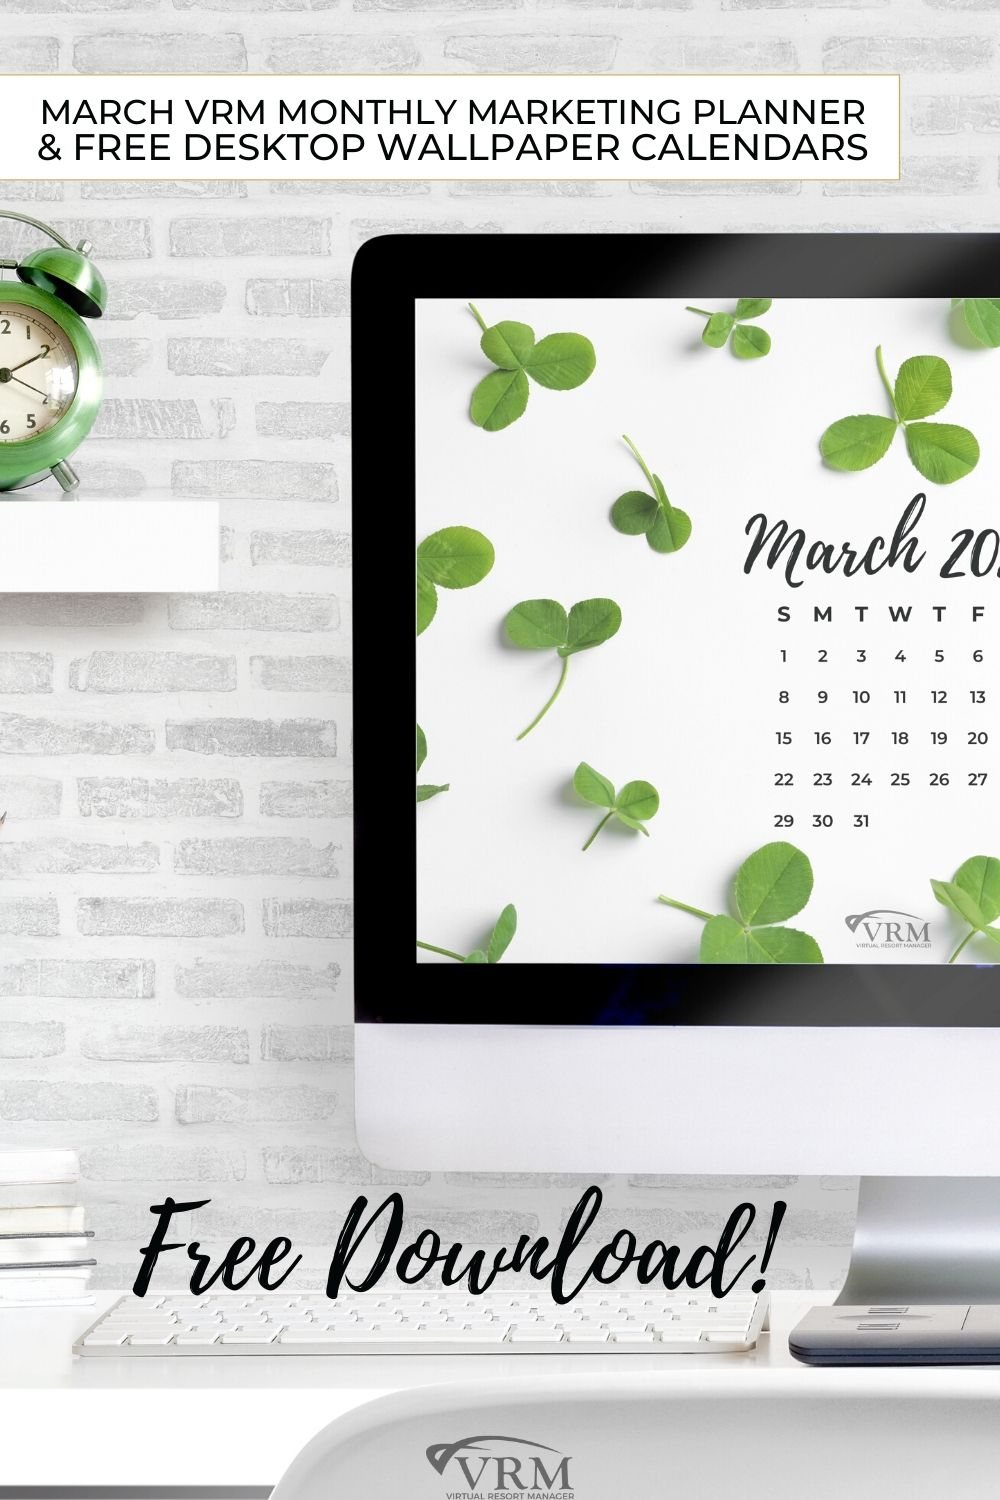 March VRM Monthly Marketing Planner and Free Desktop Wallpaper Calendars